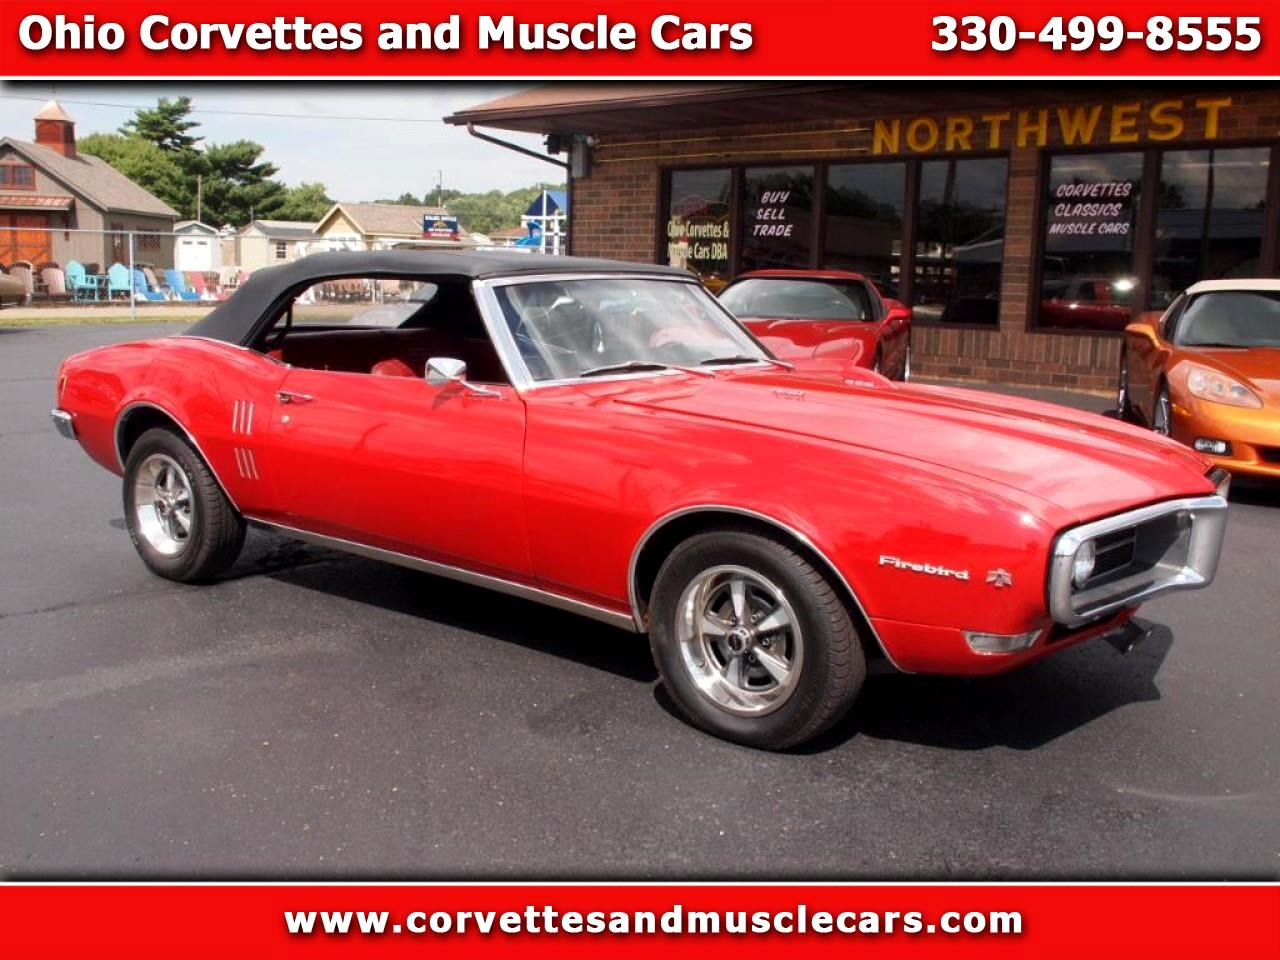 1968 Pontiac Firebird Convertible photo